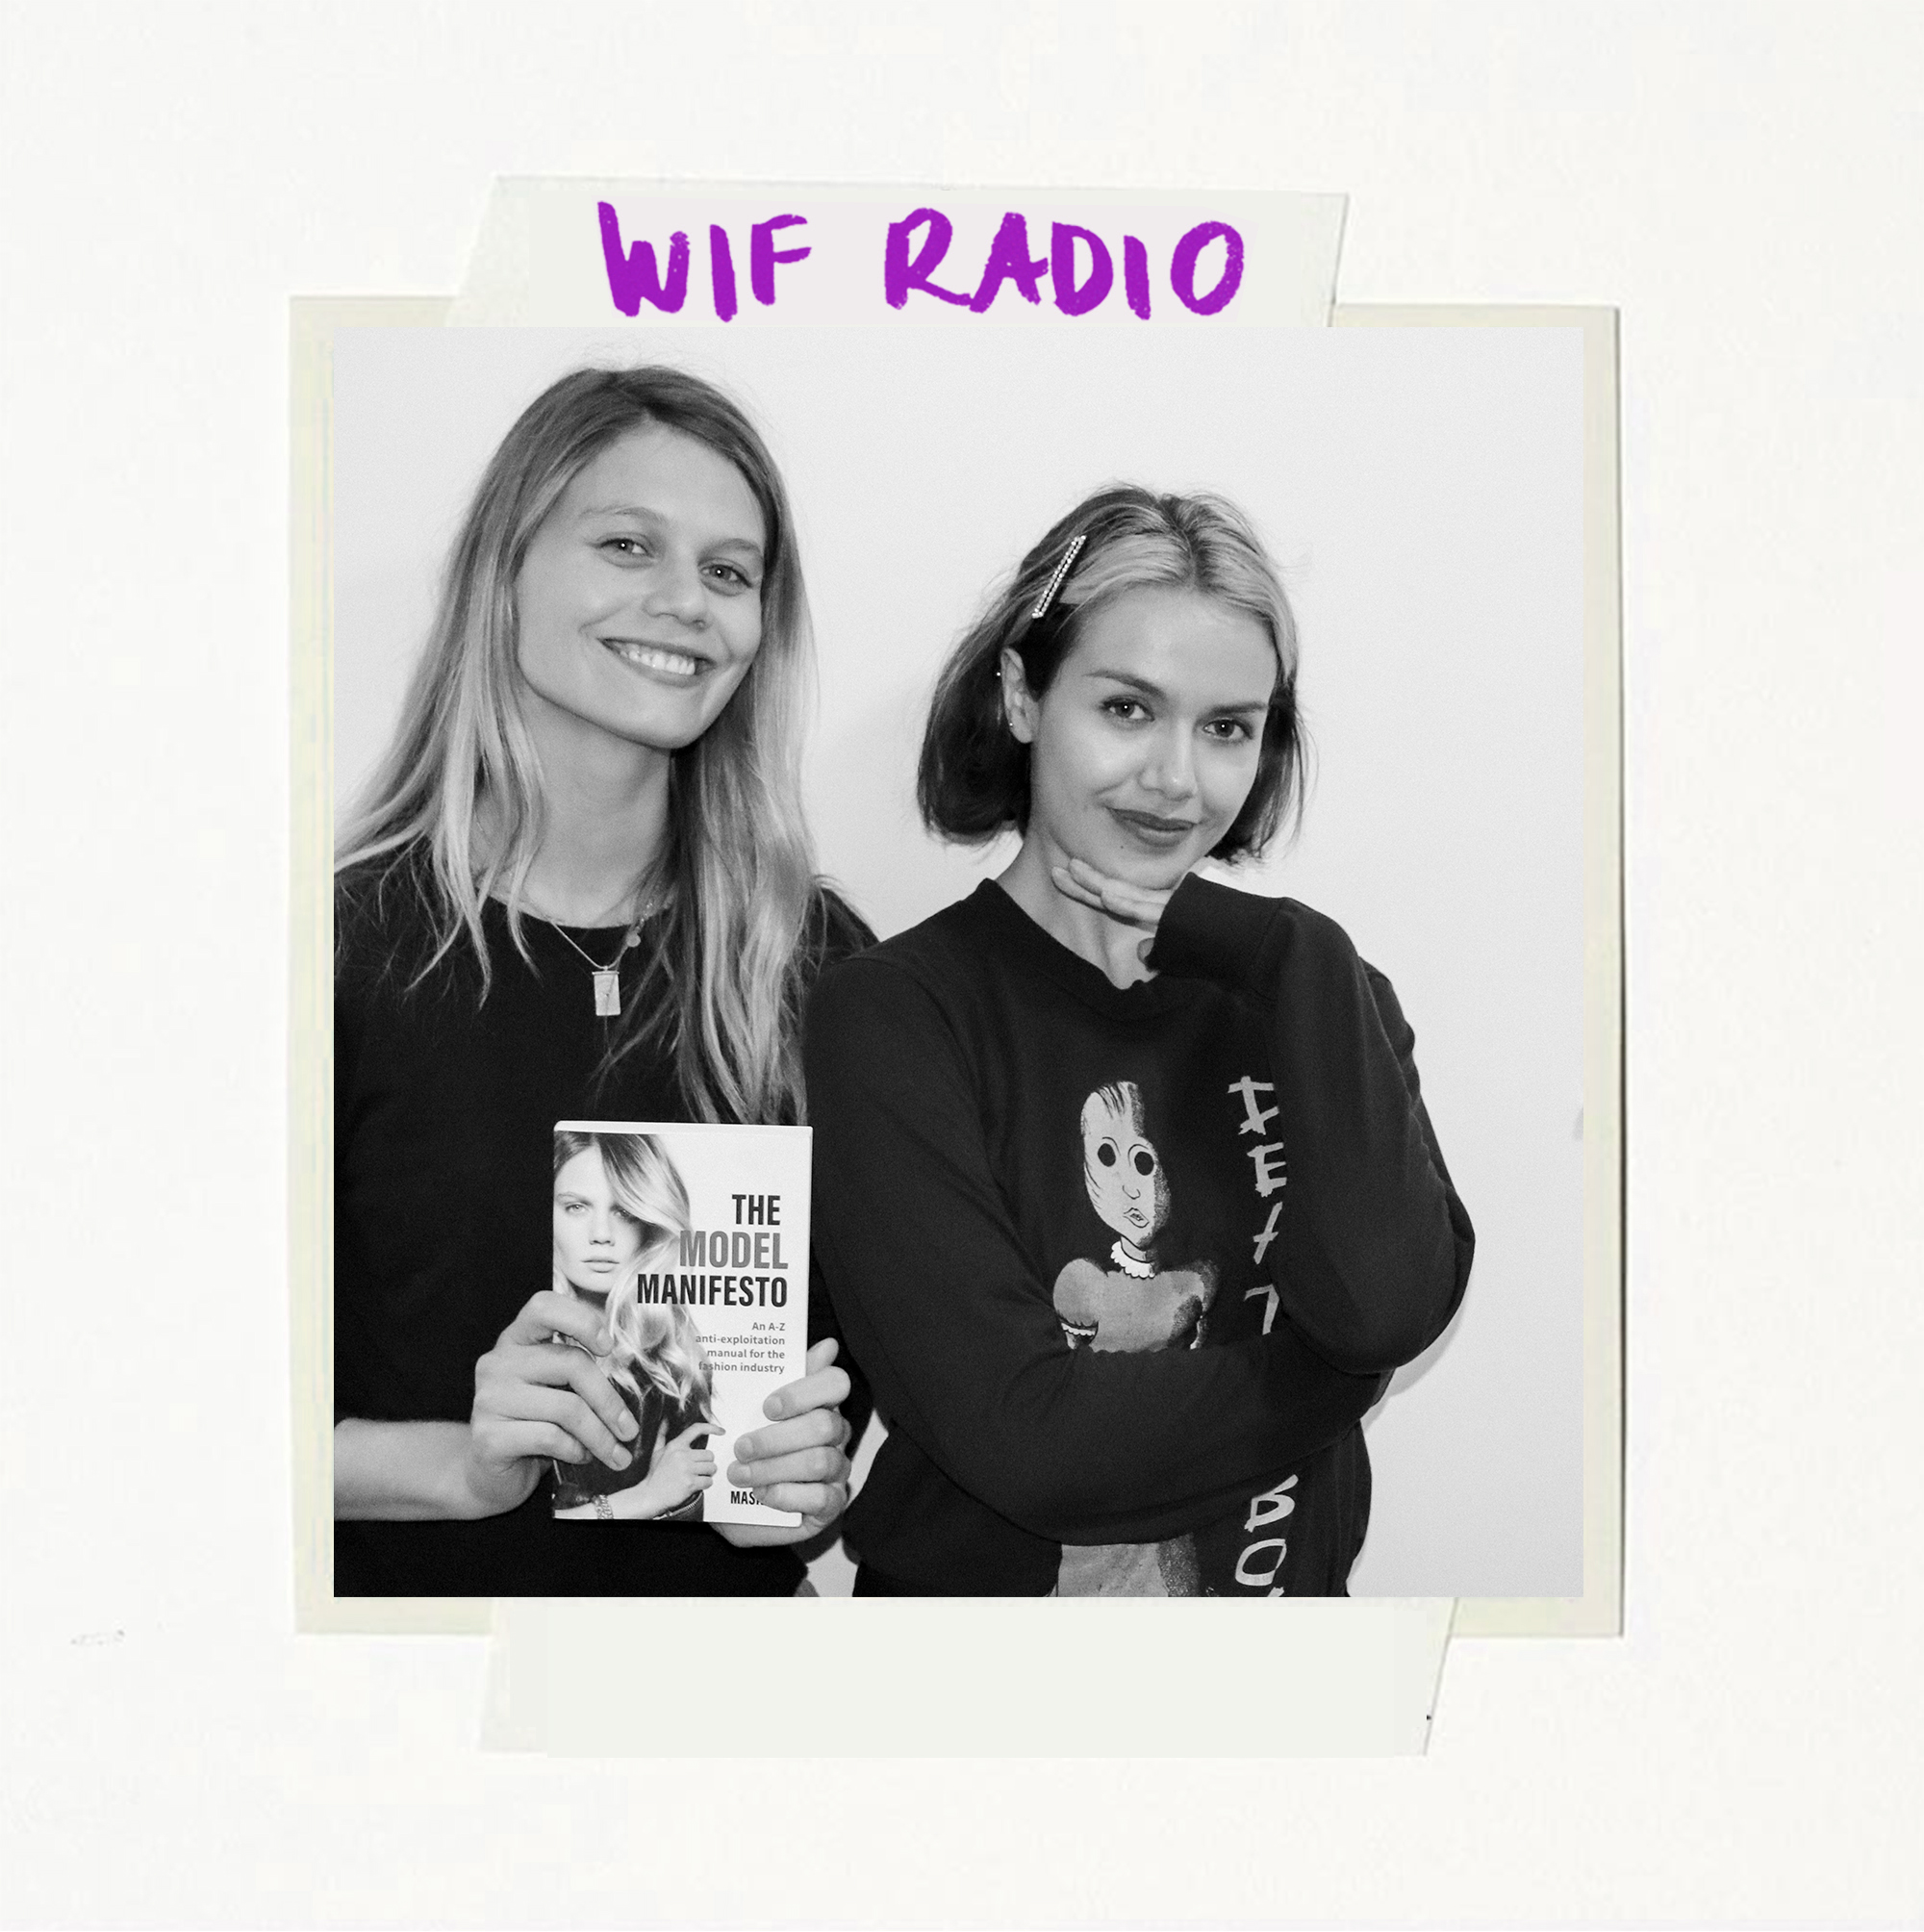 WIFRADIO_MAY19.jpg